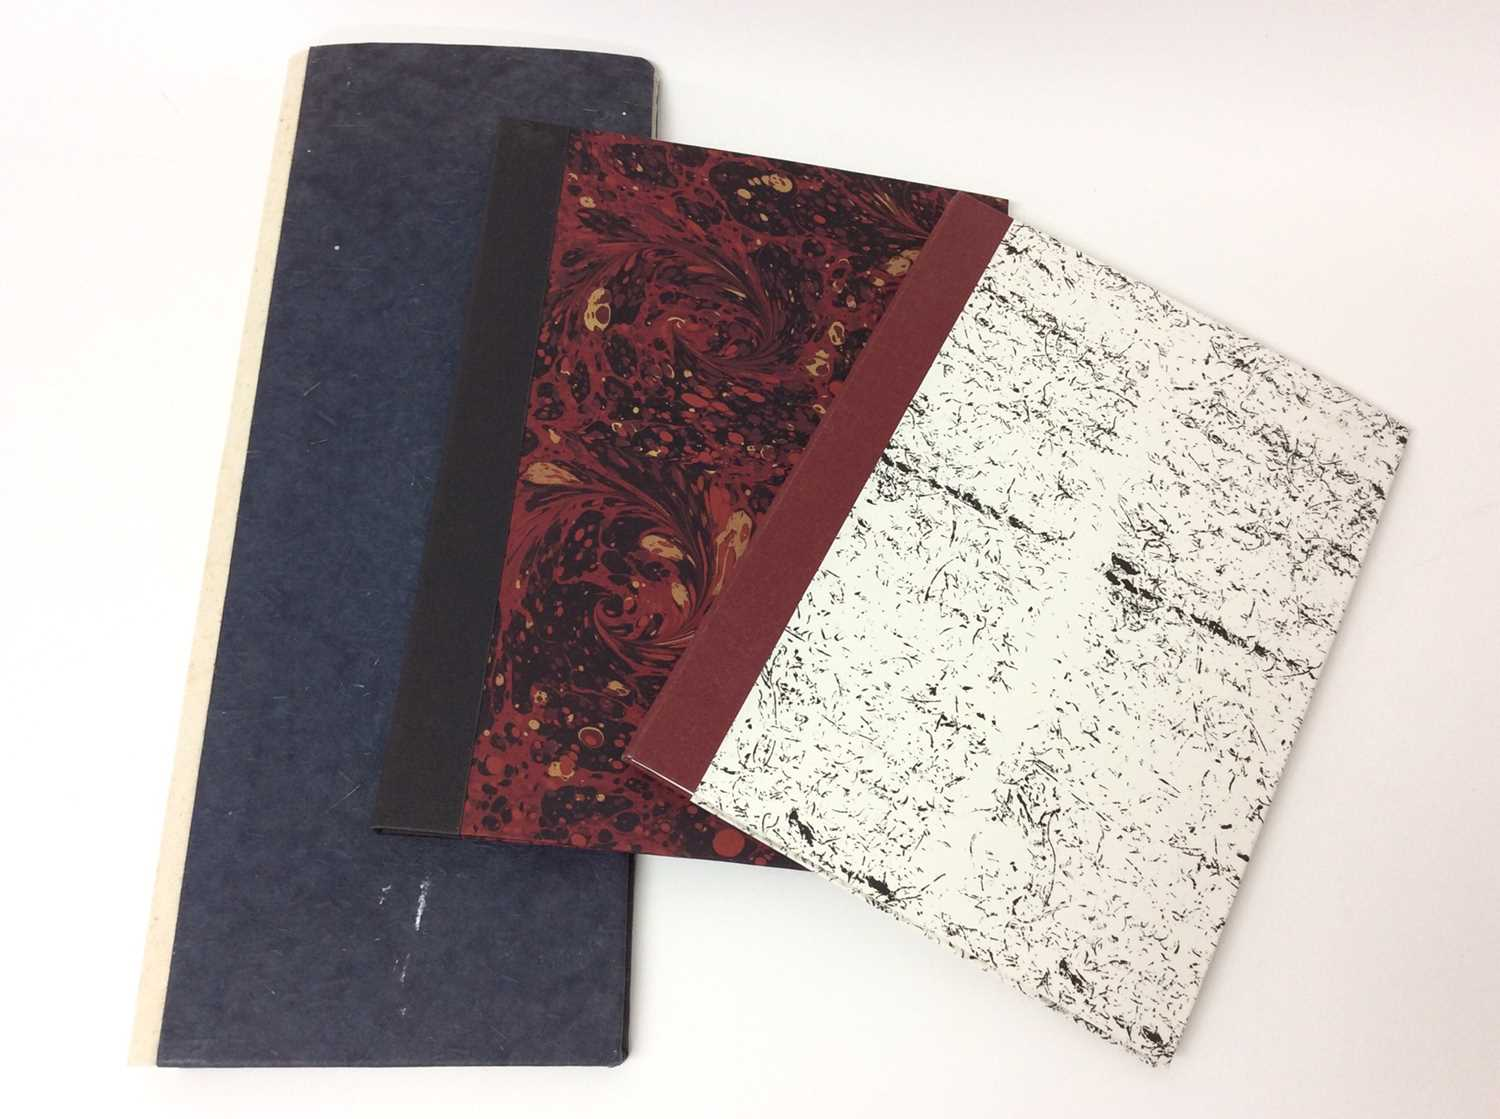 P. J. Jackson - three very limited edition private publications